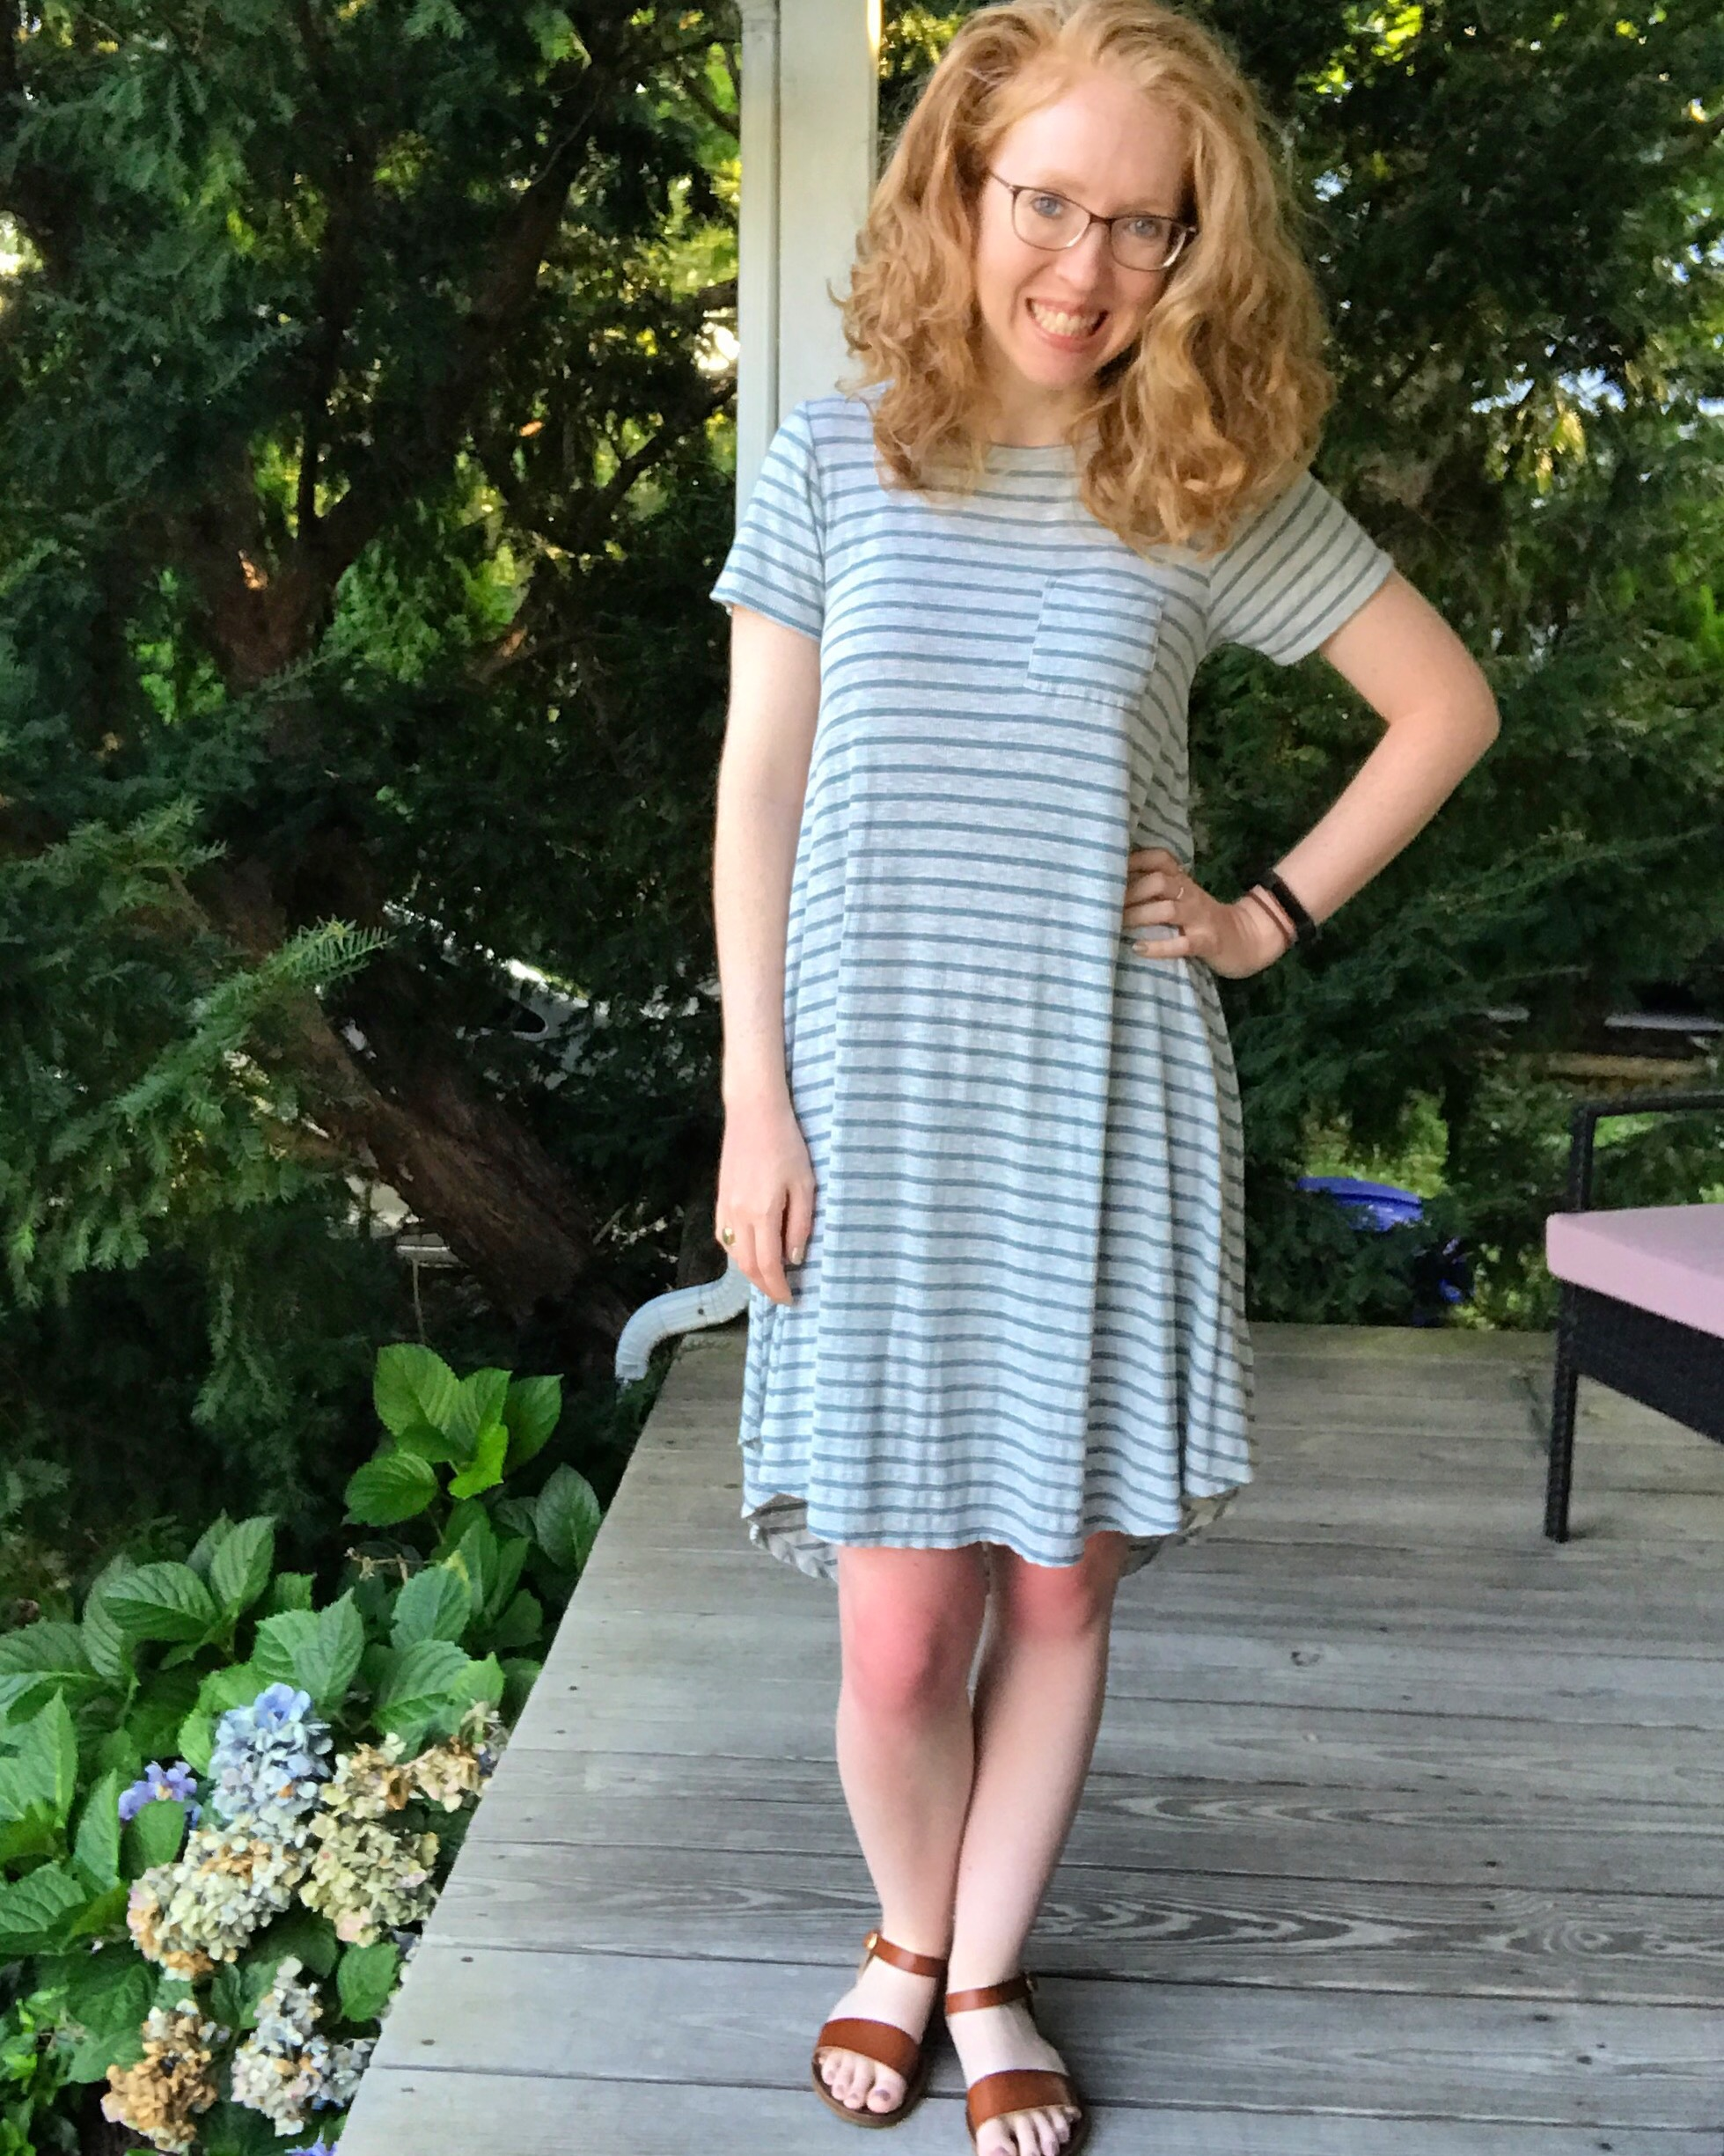 Carly dress:  LulaRoe by Serena McCullough  (2017) | Sandals:  Target  (2017)